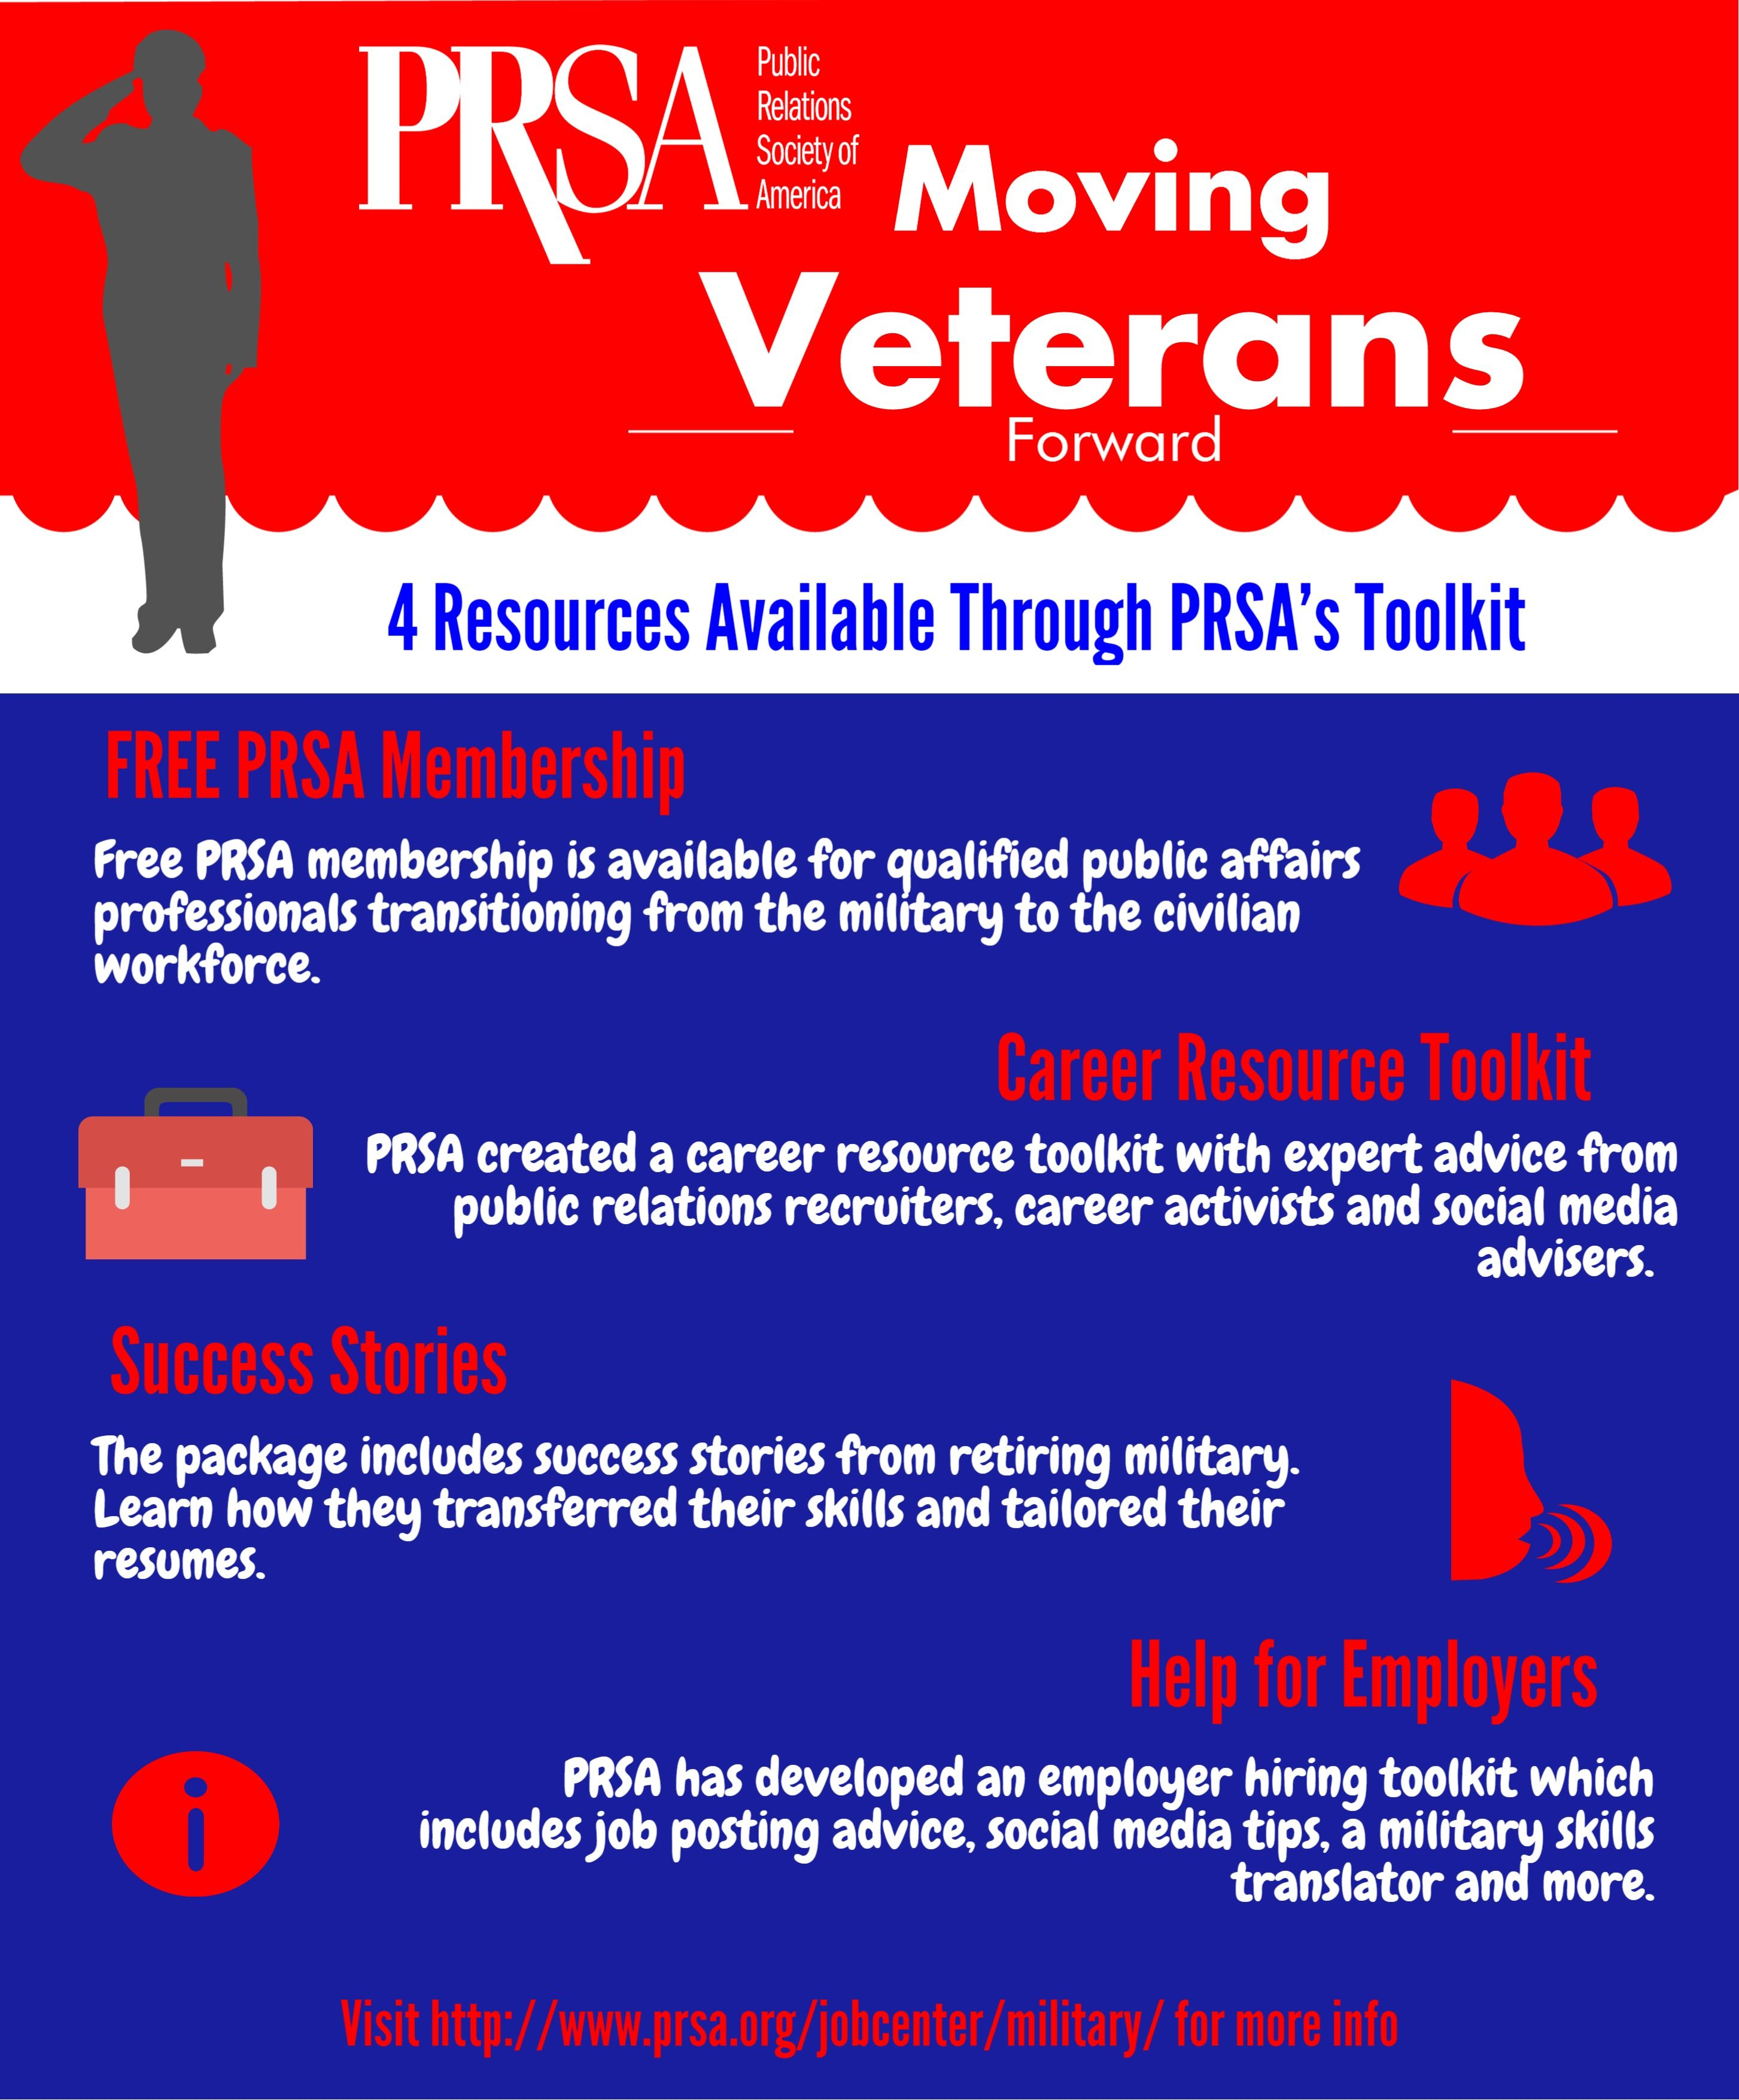 On this veterans day learn about prsas moving veterans